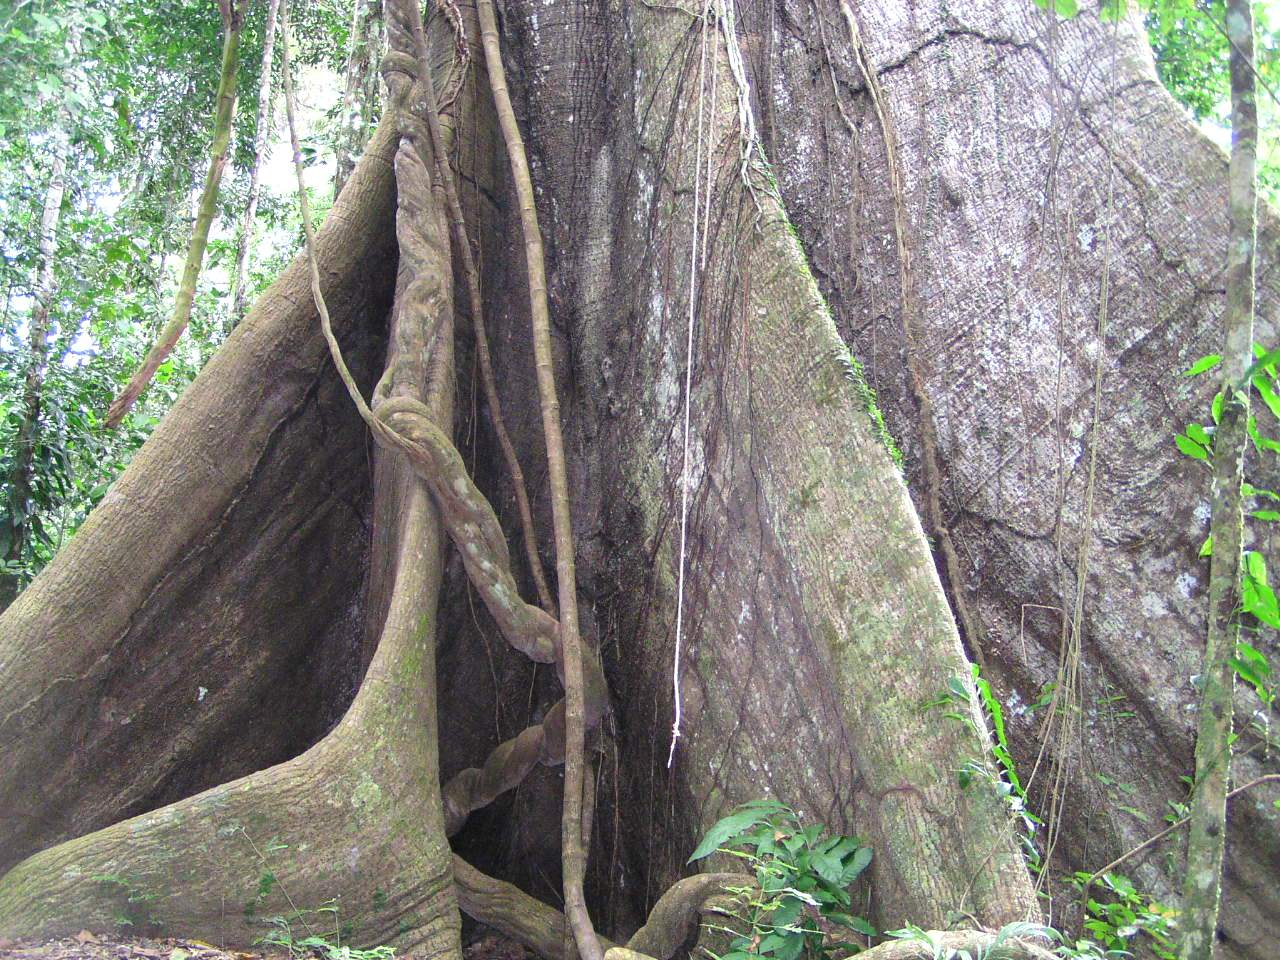 A large canopy emergent tree from the forest floor. Buttressed roots hold it steady in heavy rain.